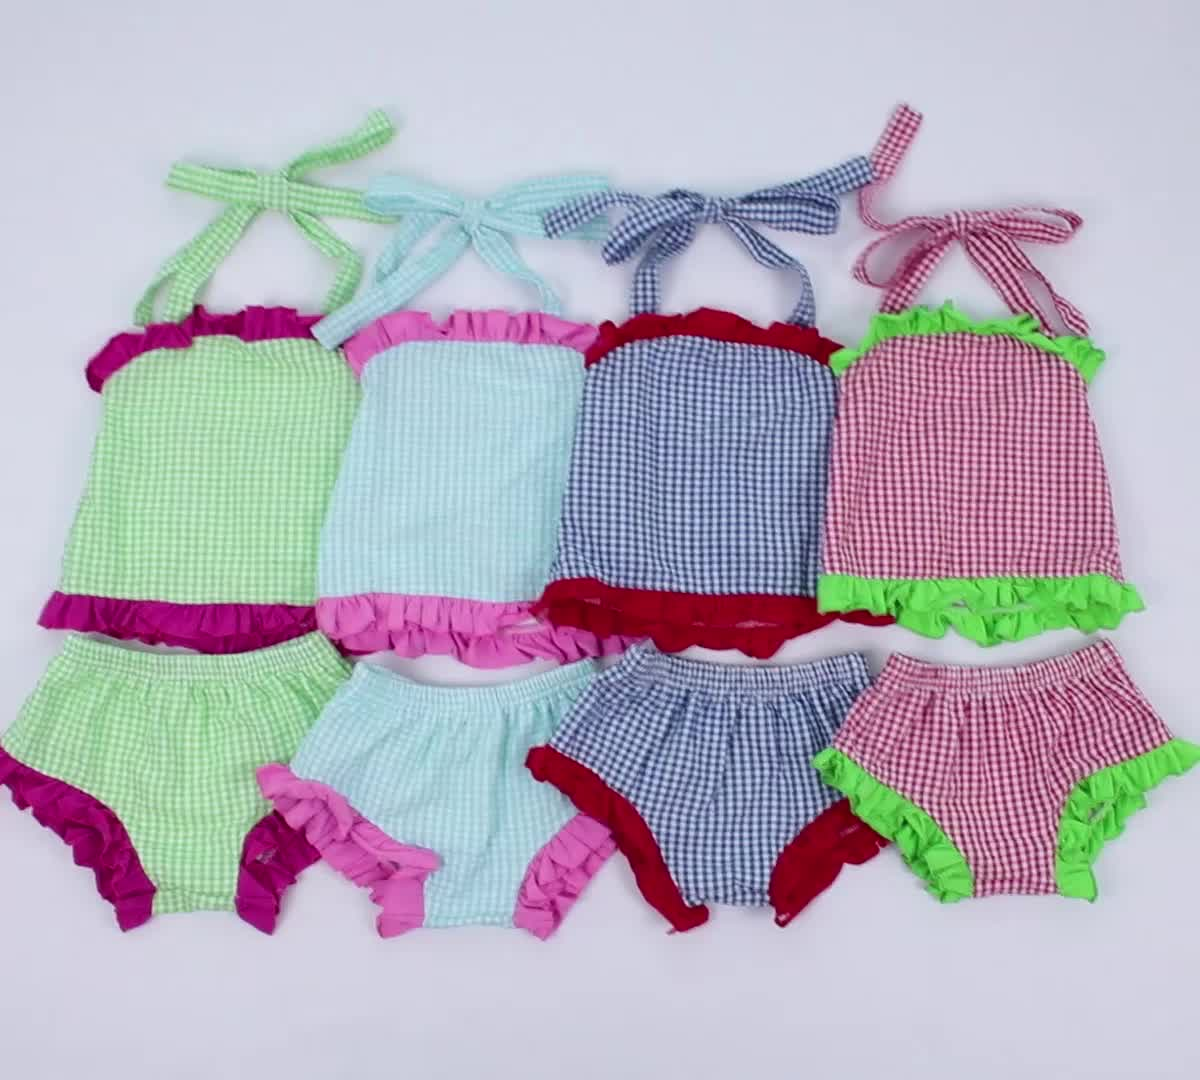 Summer Girls Sweat Suits For Swim Wear Green Gingham Girls Two Pieces Swim Suit